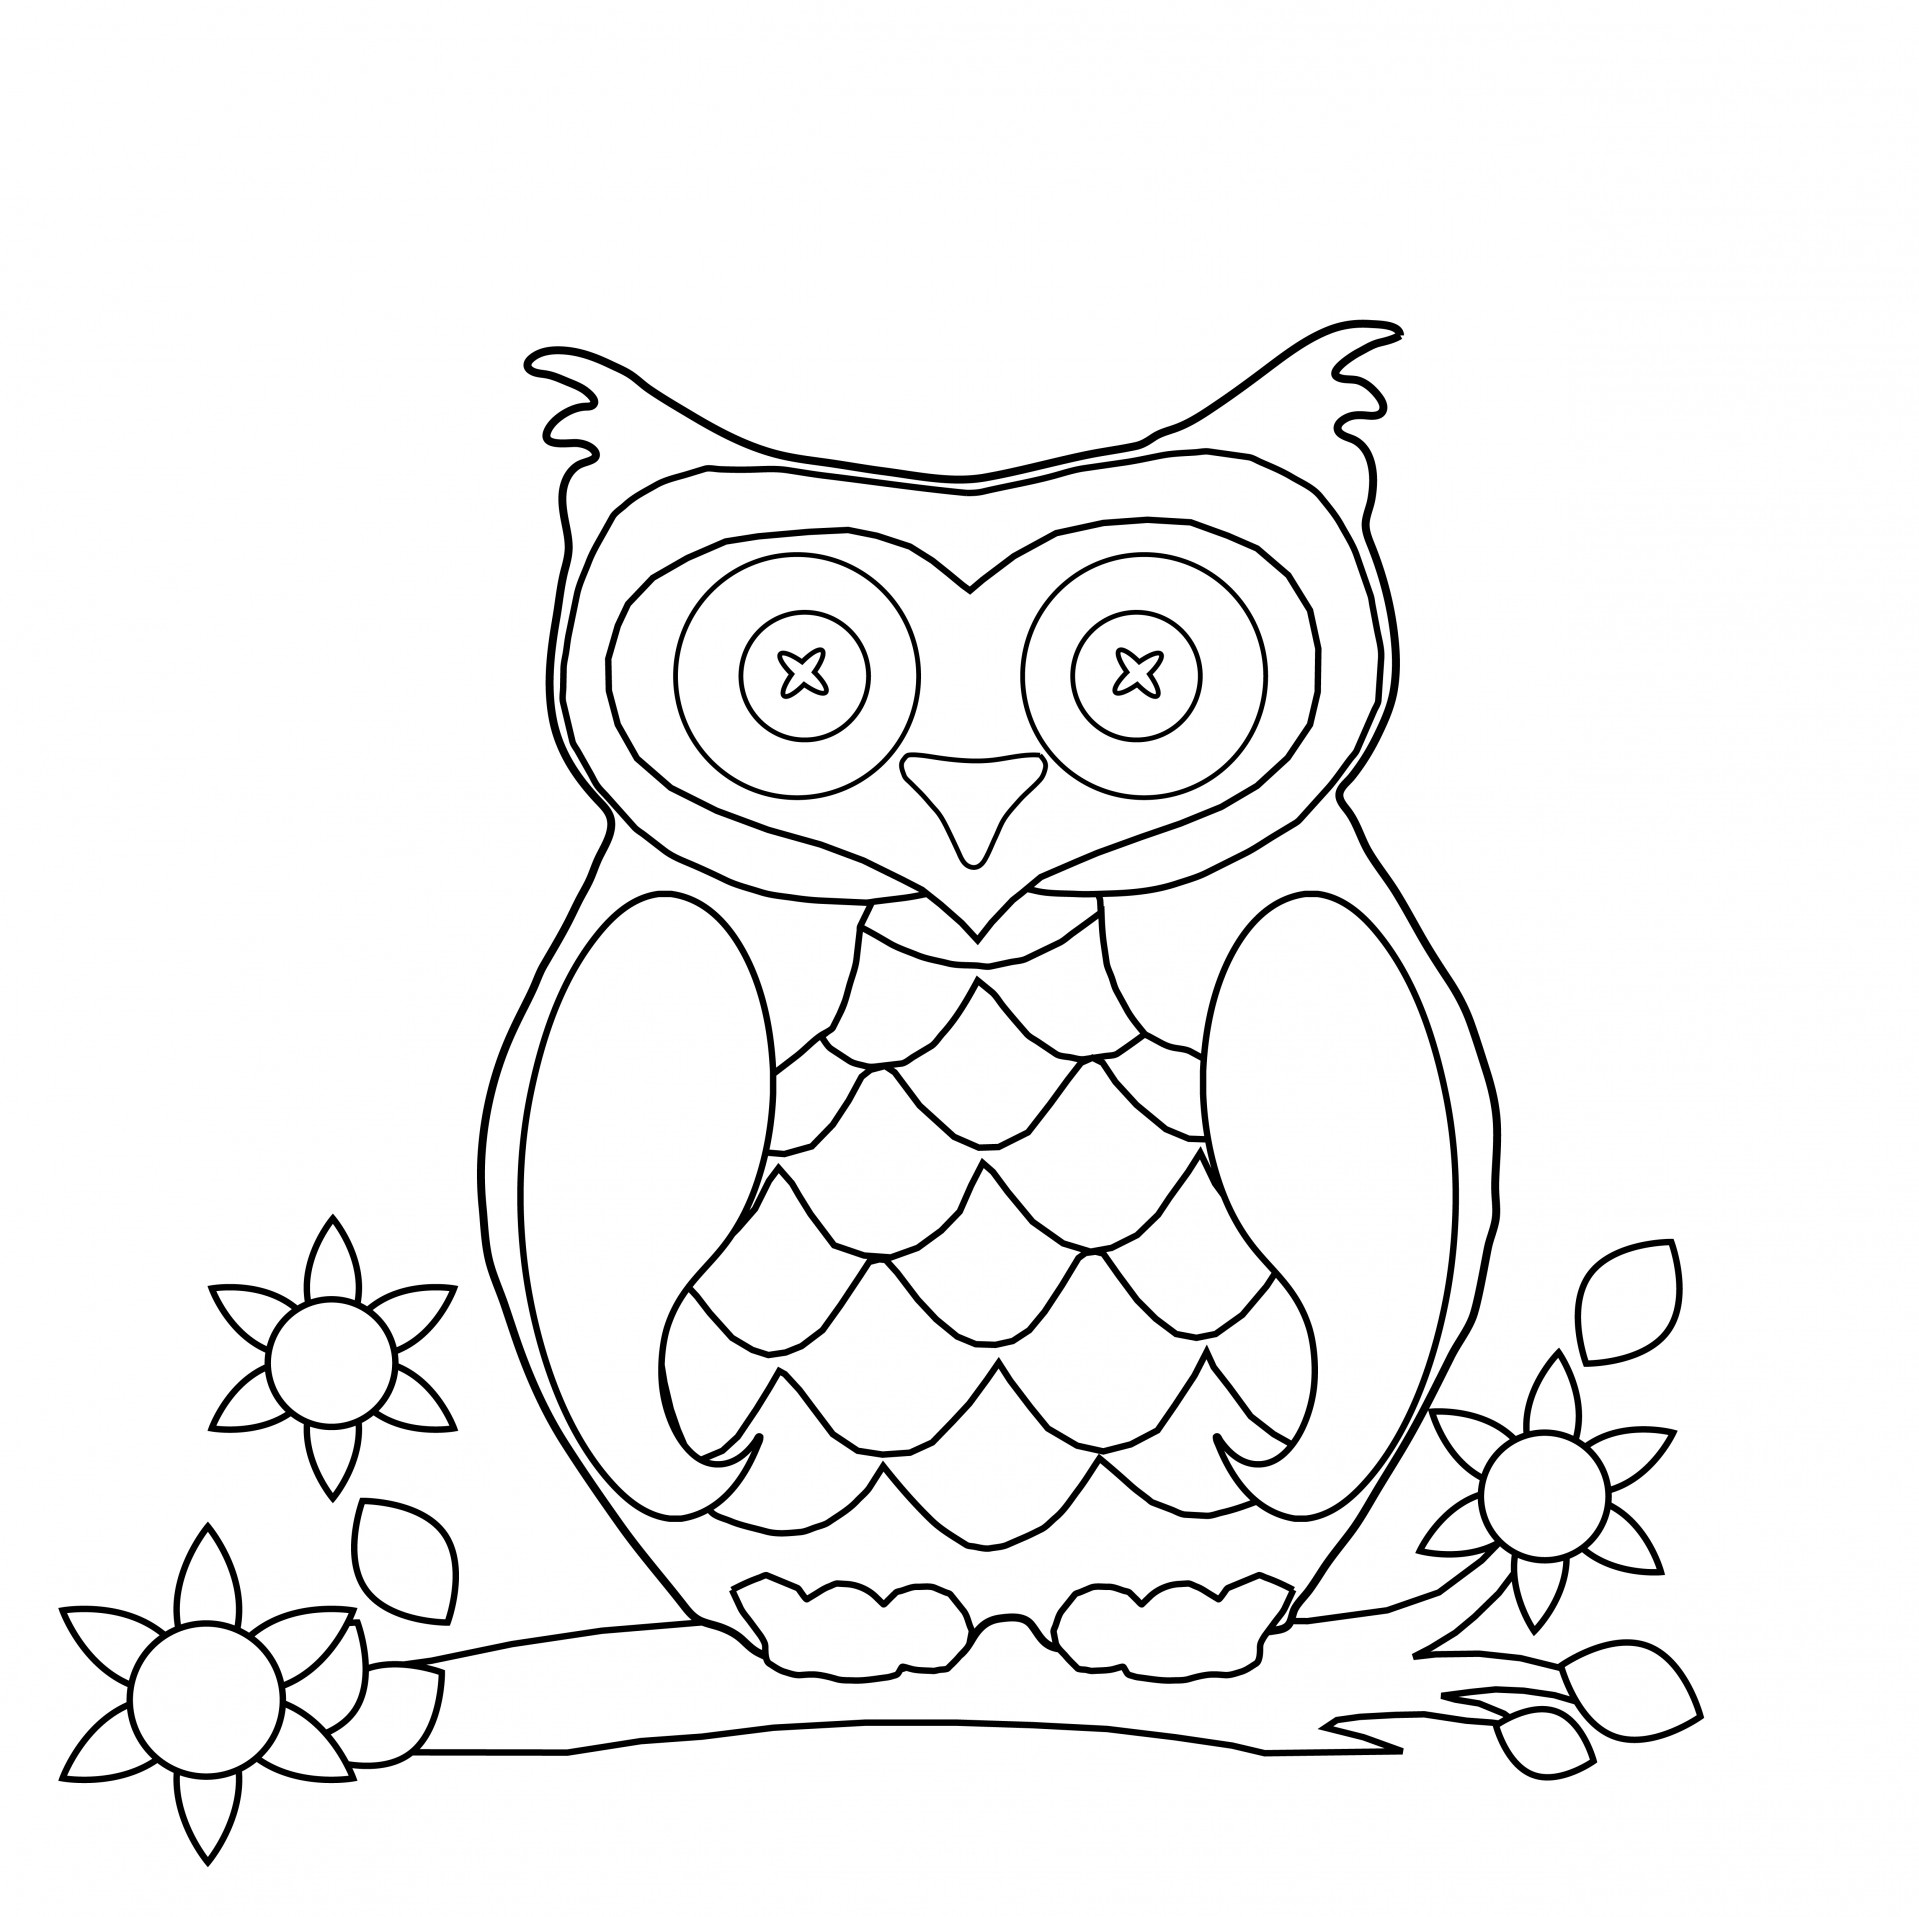 coloring pages to color online make any picture a coloring page with ipiccy ipiccy color online to pages coloring